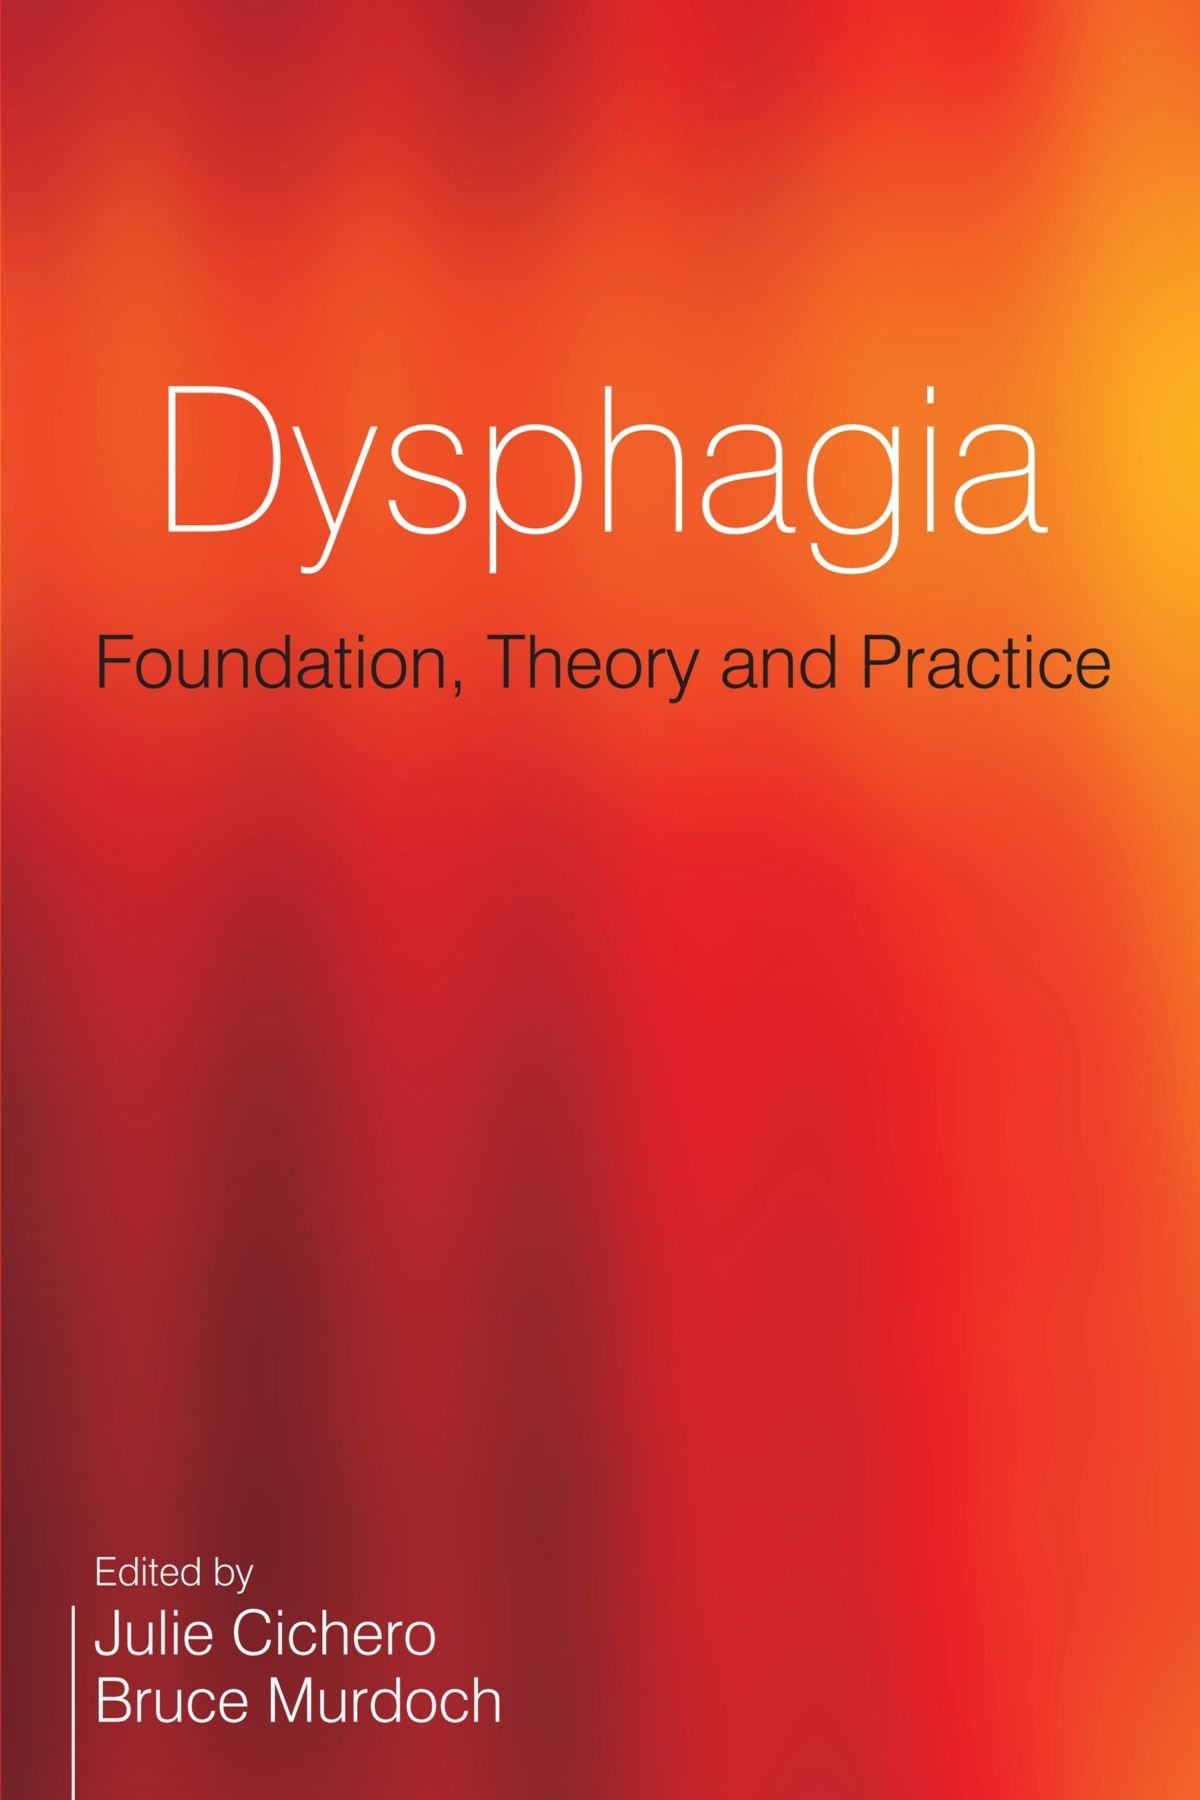 Dysphagia: Foundation, Theory and Practice